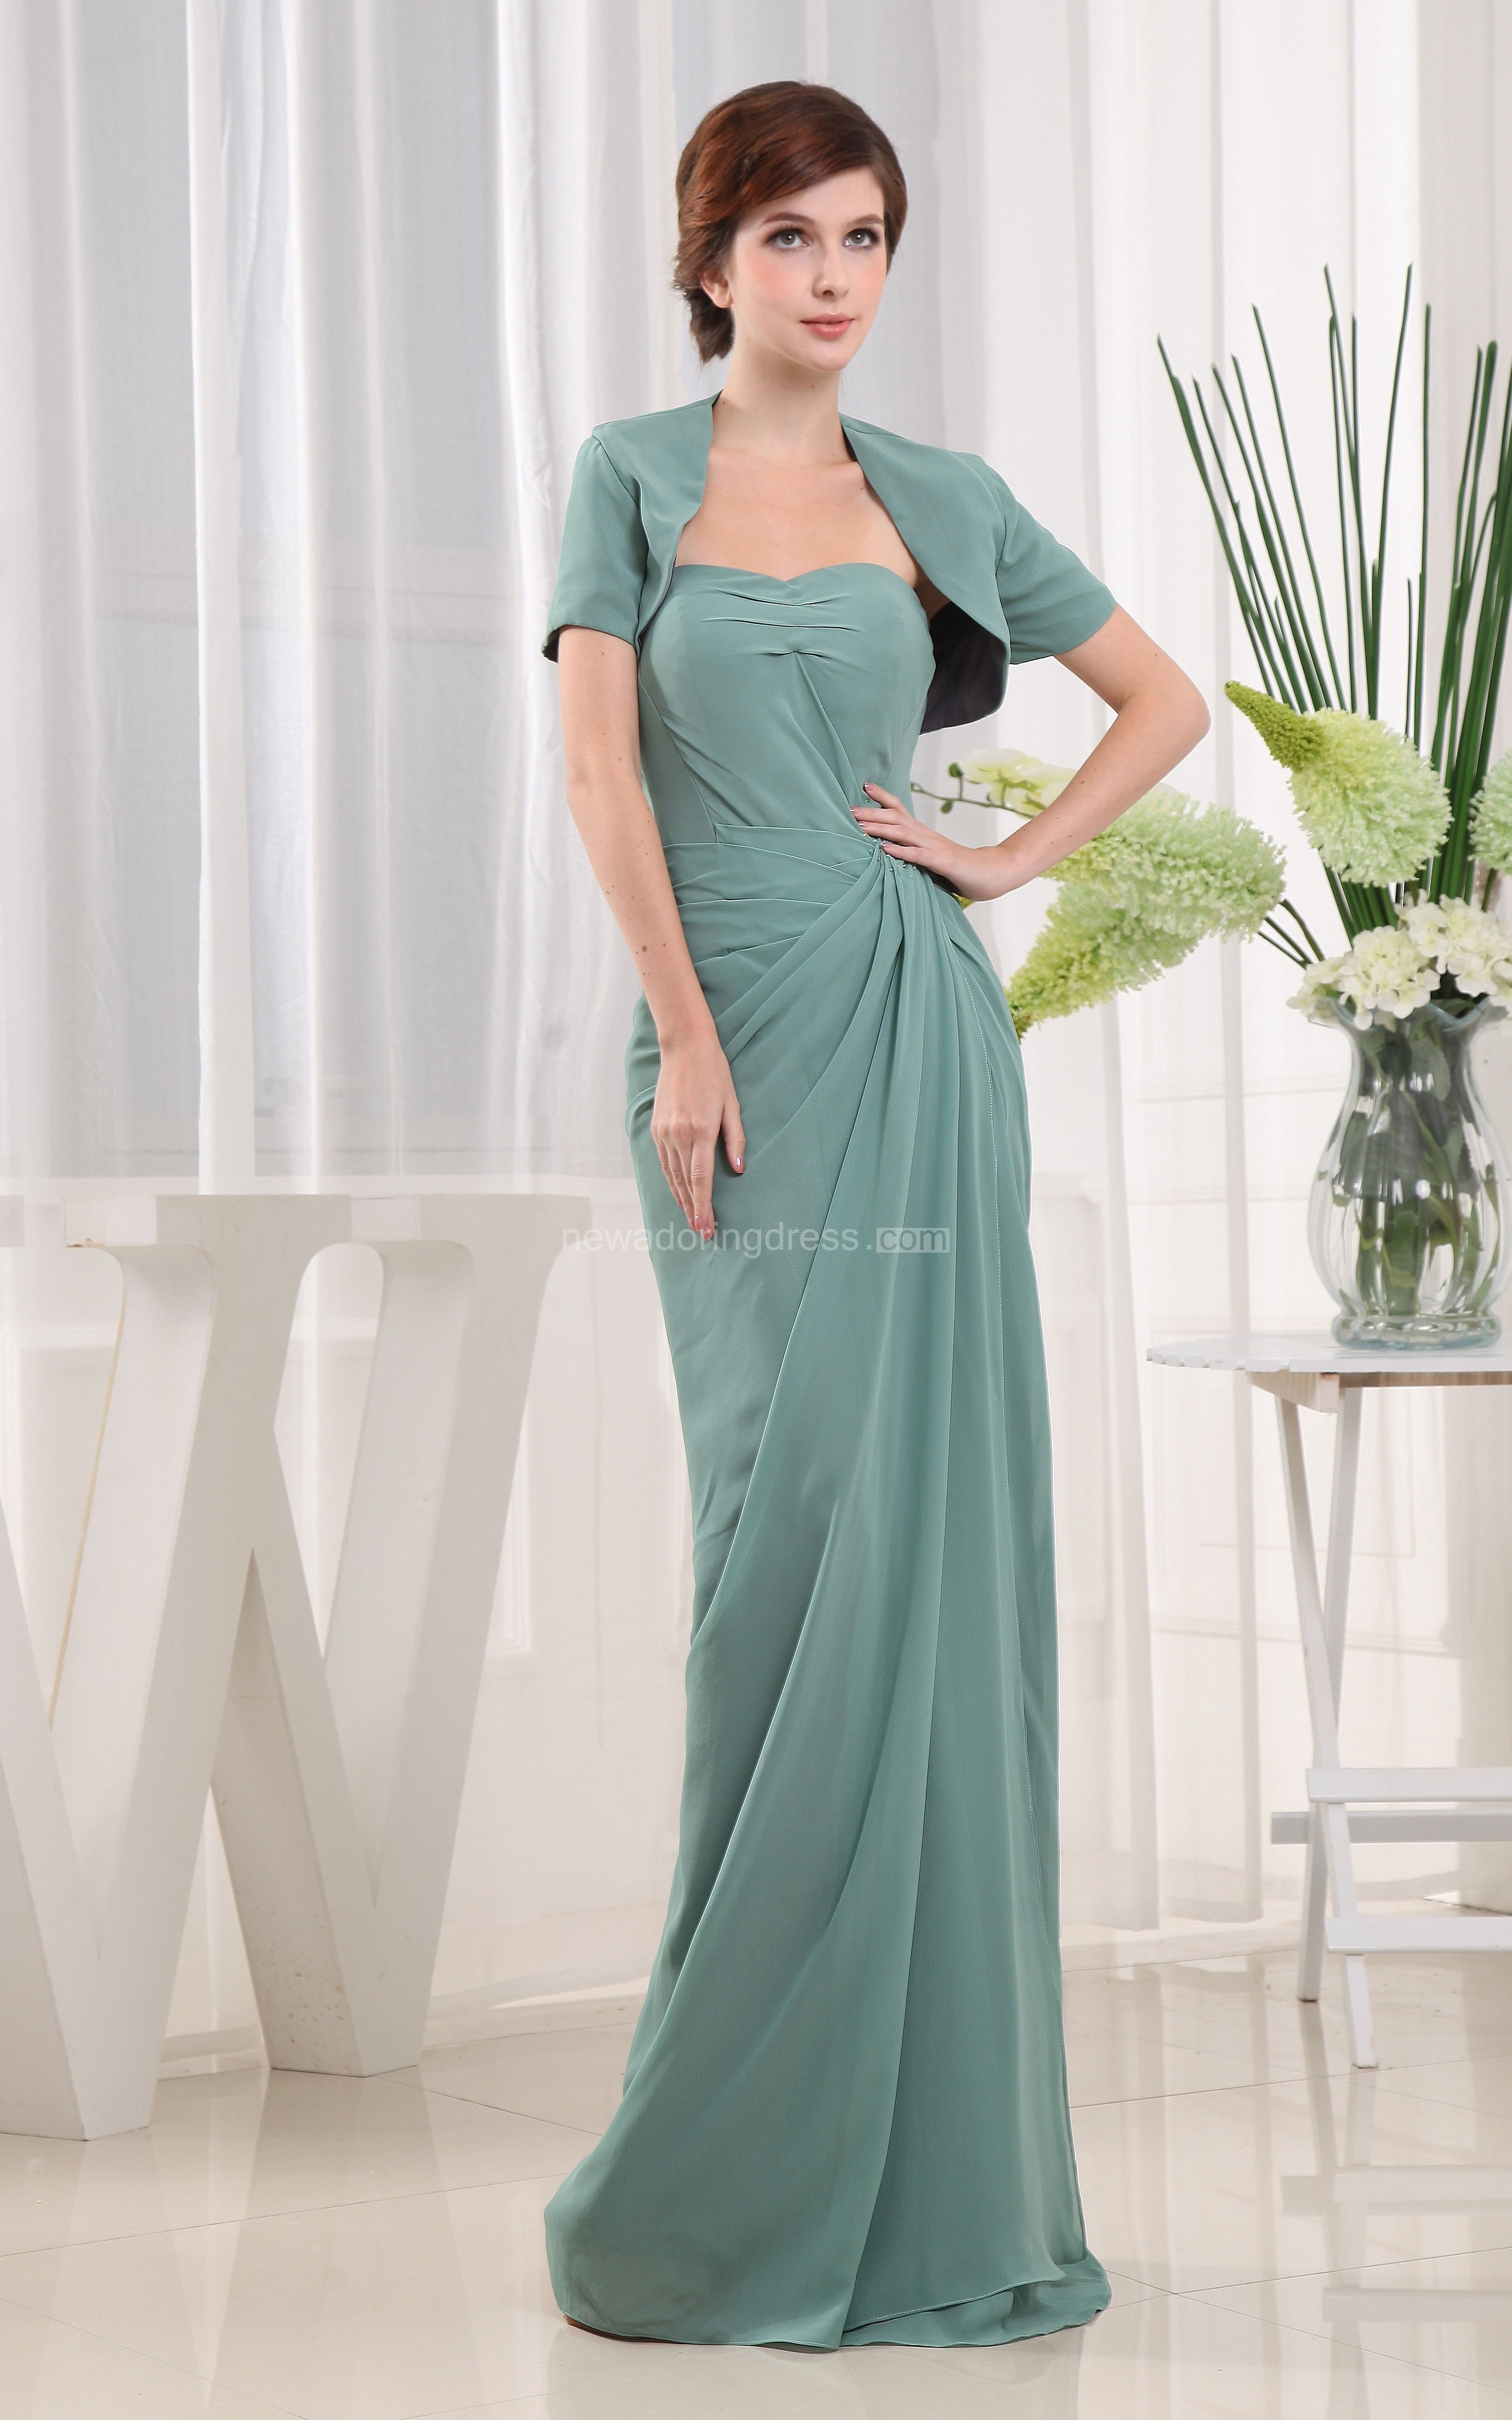 Elegant Strapless Floor-Length Dress With Side Draping | Floor ...